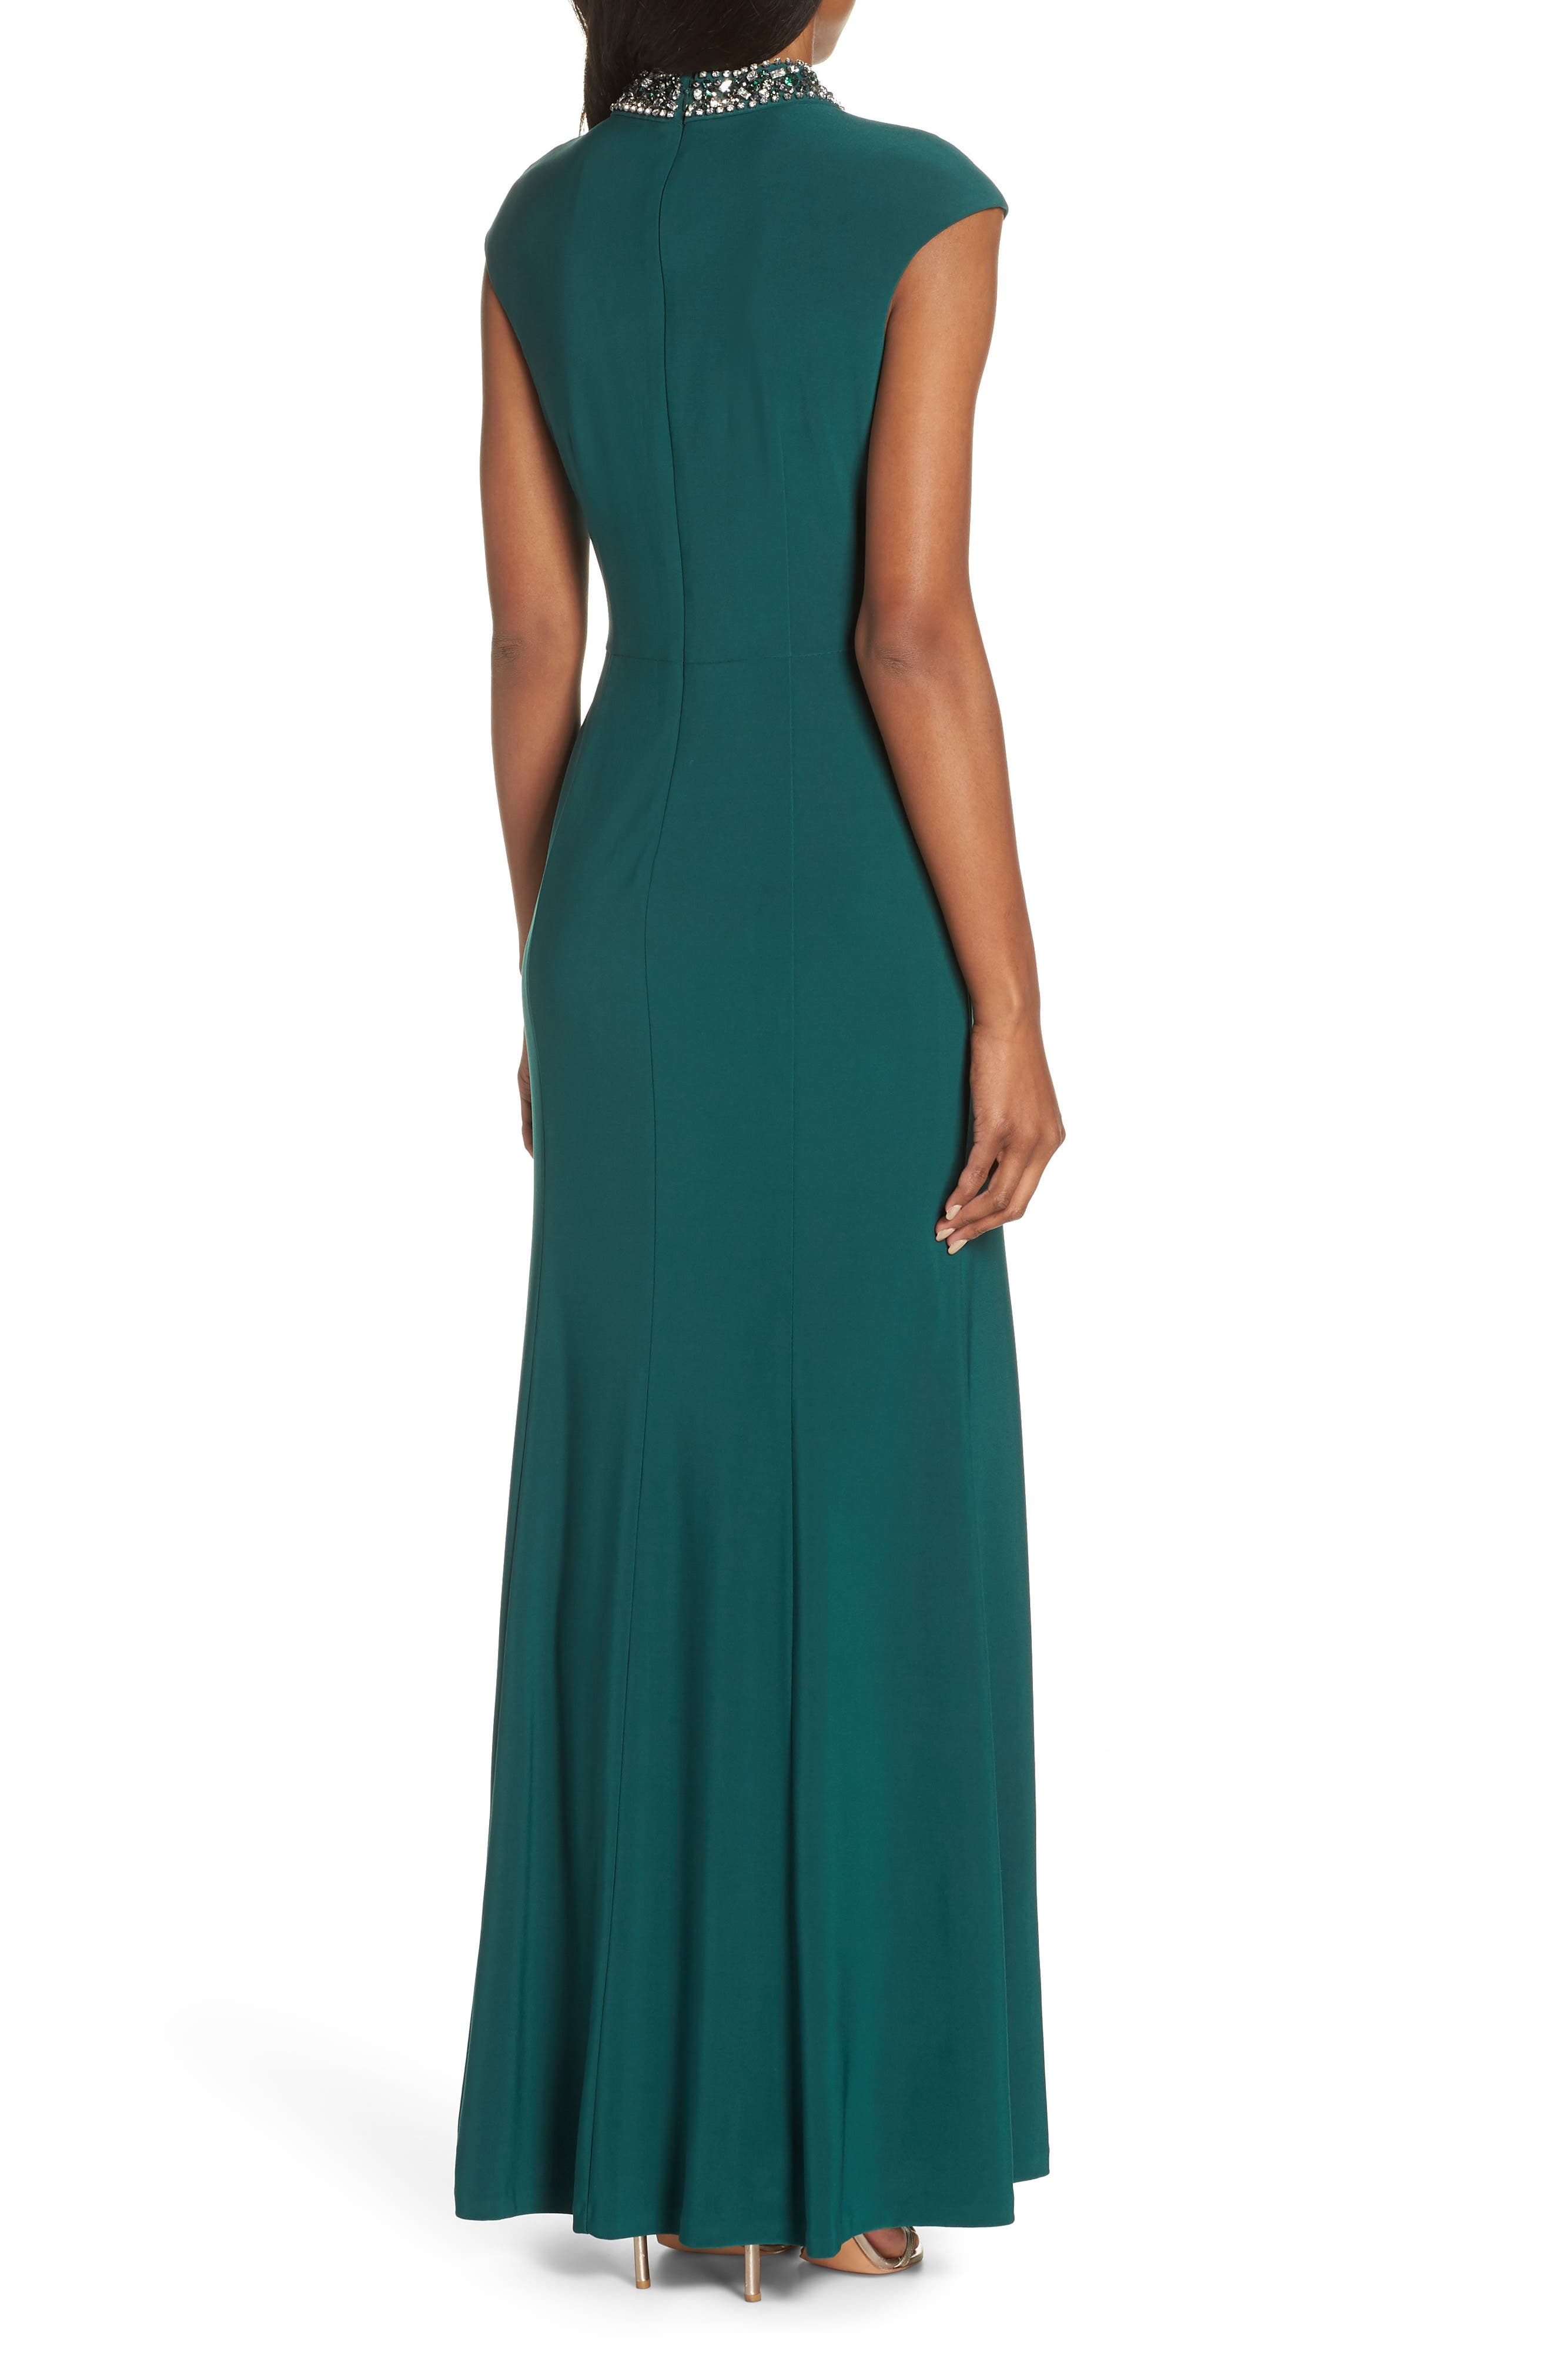 VINCE CAMUTO, Cap Sleeve Gown, Alternate thumbnail 2, color, 301